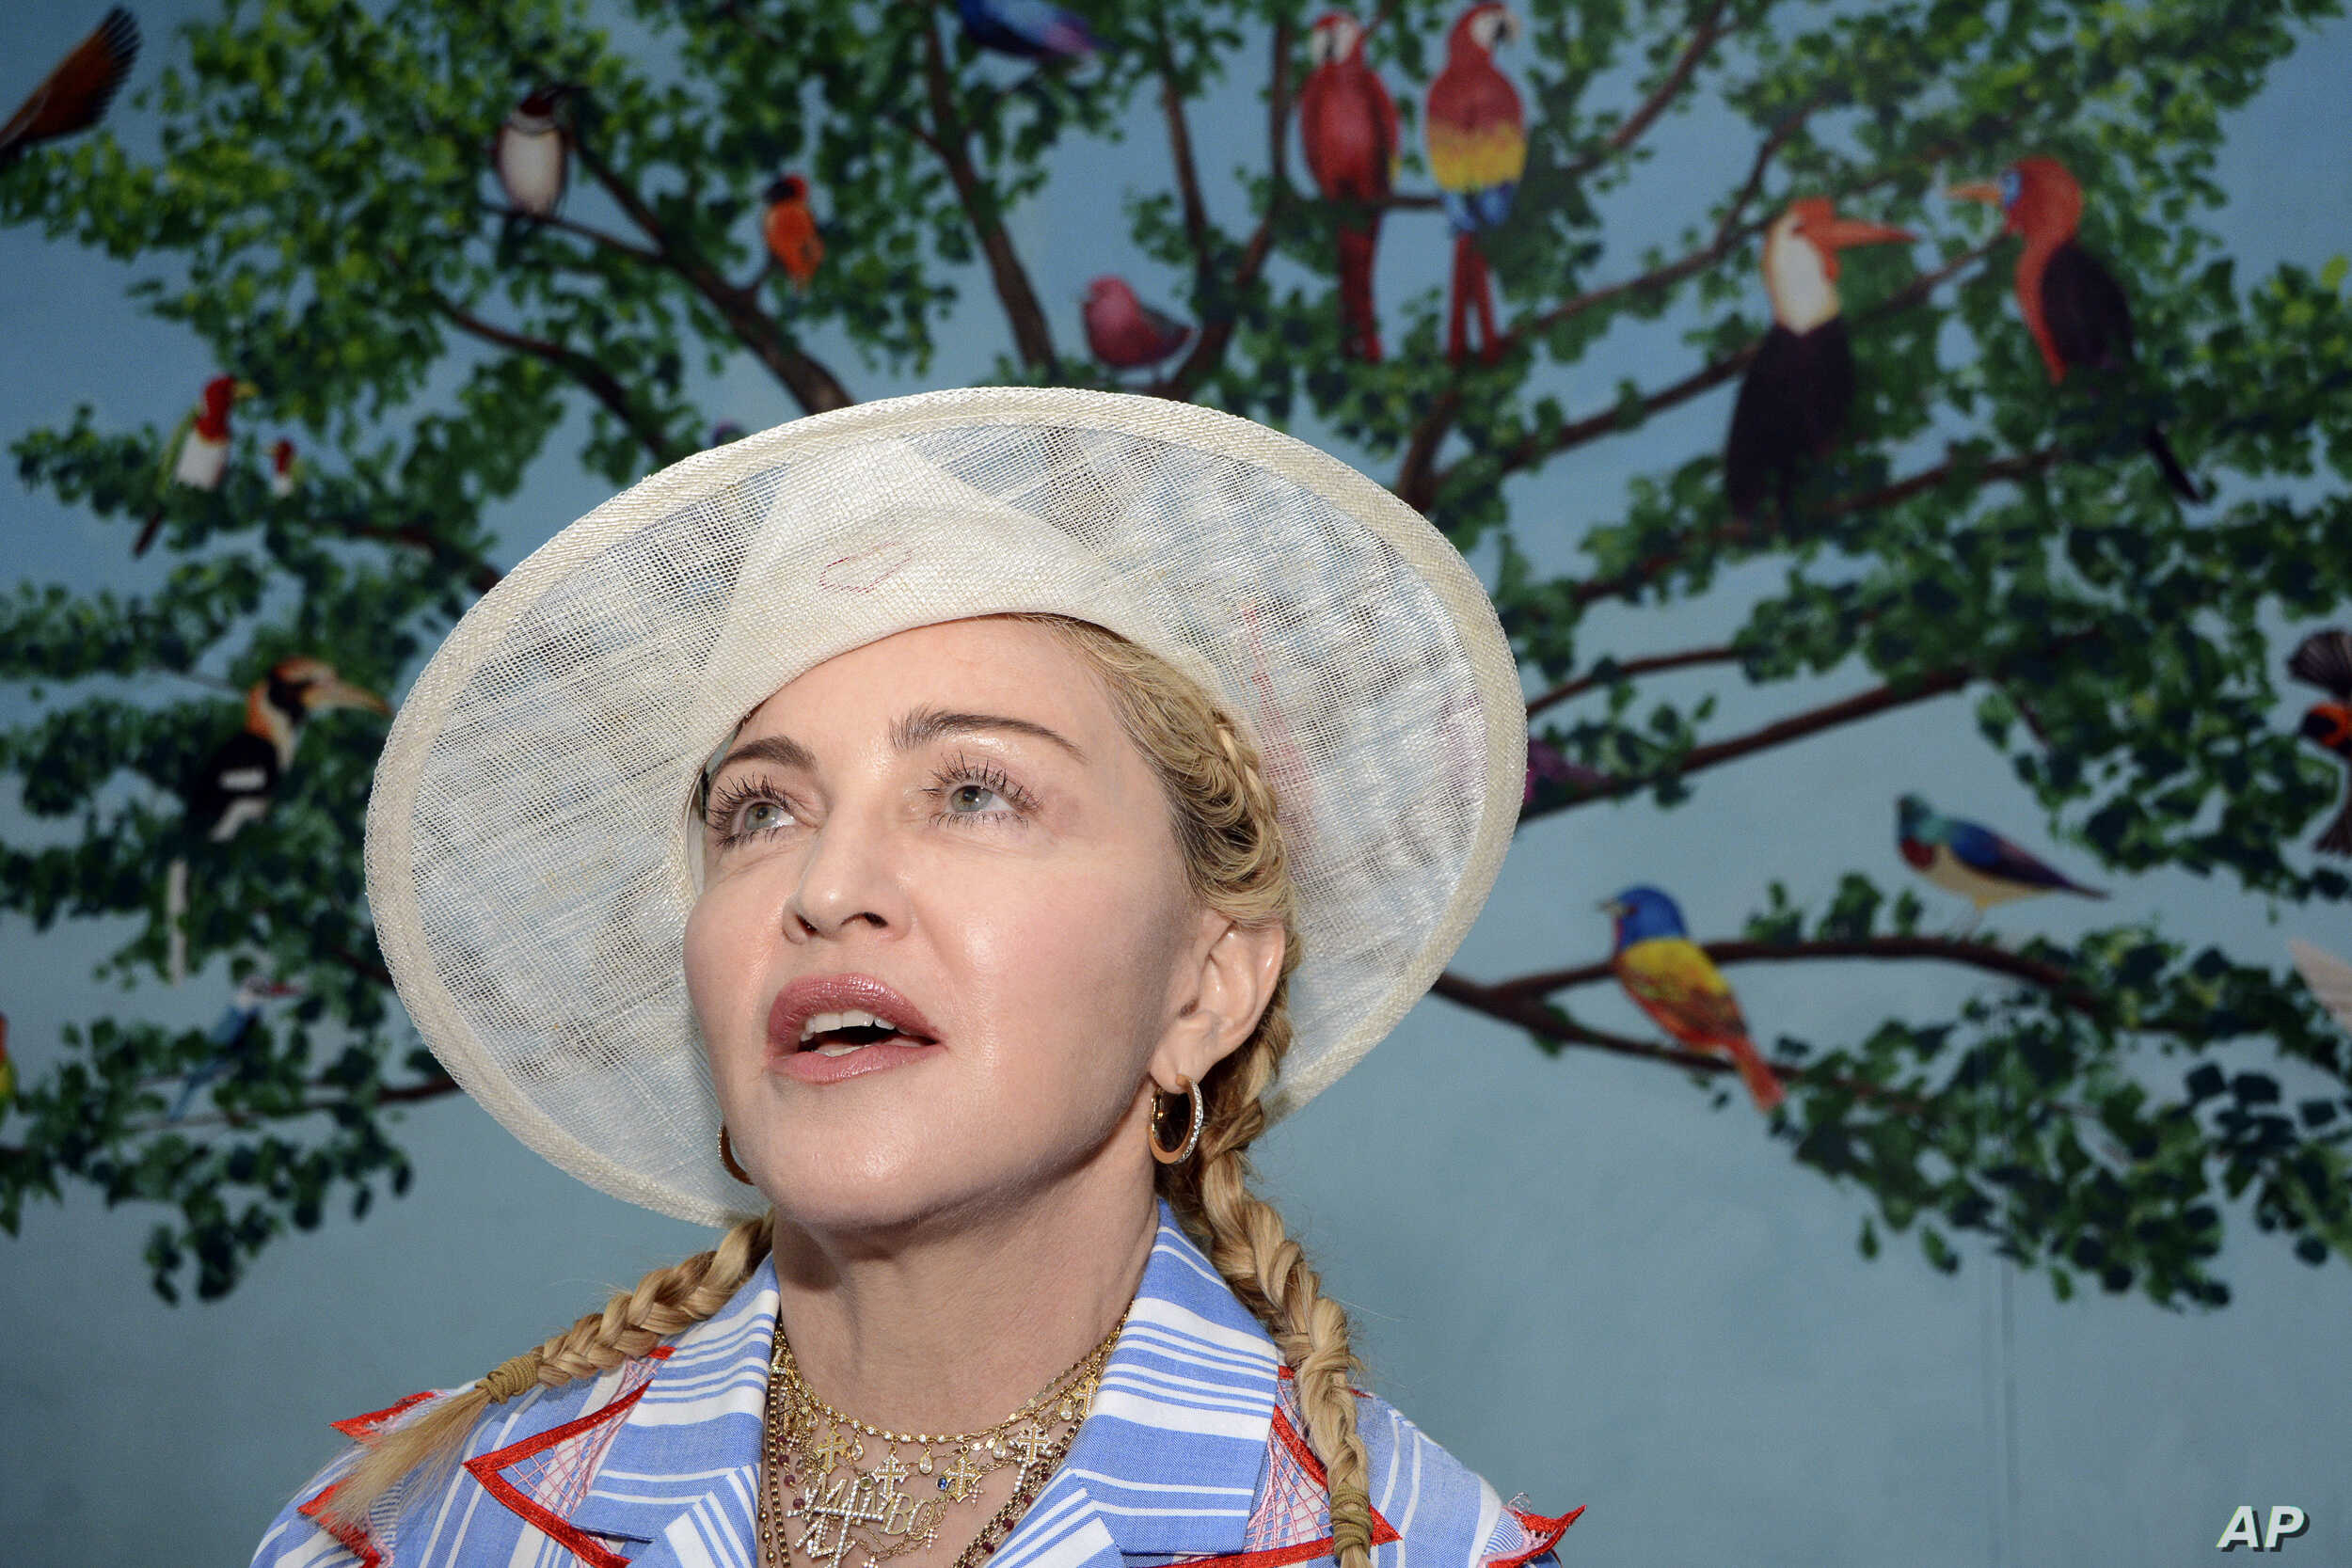 U.S. singer Madonna speaks to the press at a news conference in Blantyre, Malawi, July 16, 2018.